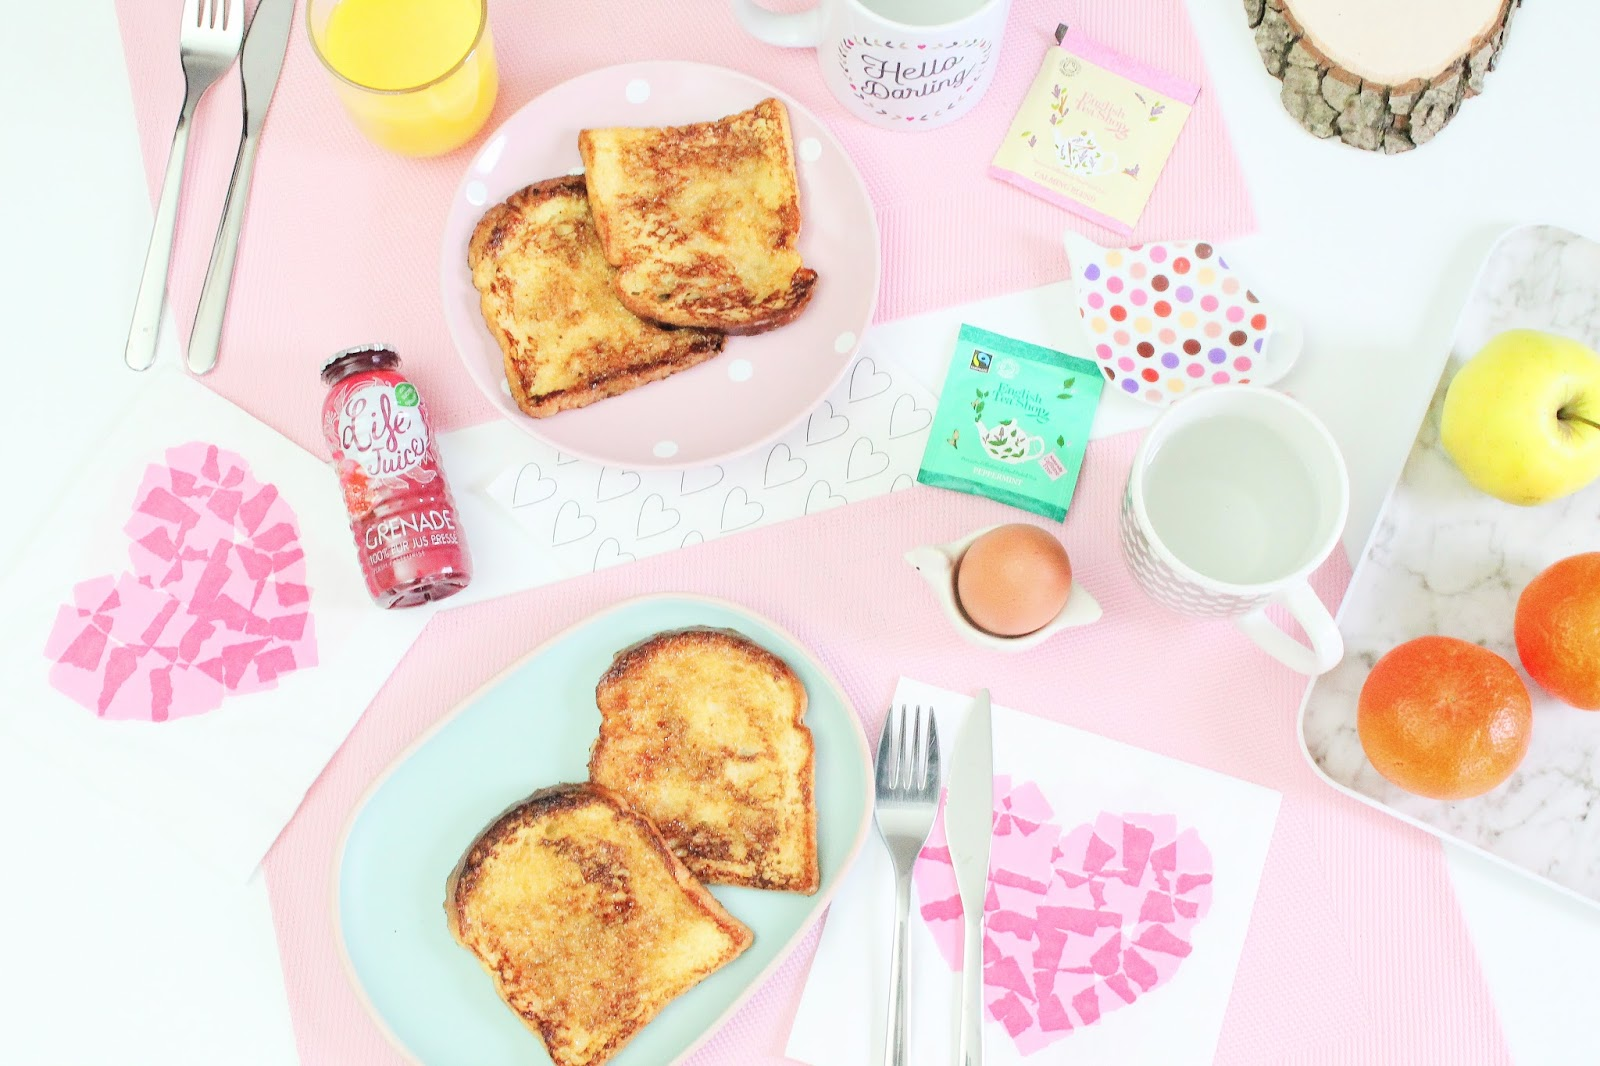 les gommettes de melo recette pain perdu idée brunch saint valentin crepes pancakes sucre pain de mie oeufs lait végétal degustabox miel sarrazin soja facile comment faire table teatime english tea shop